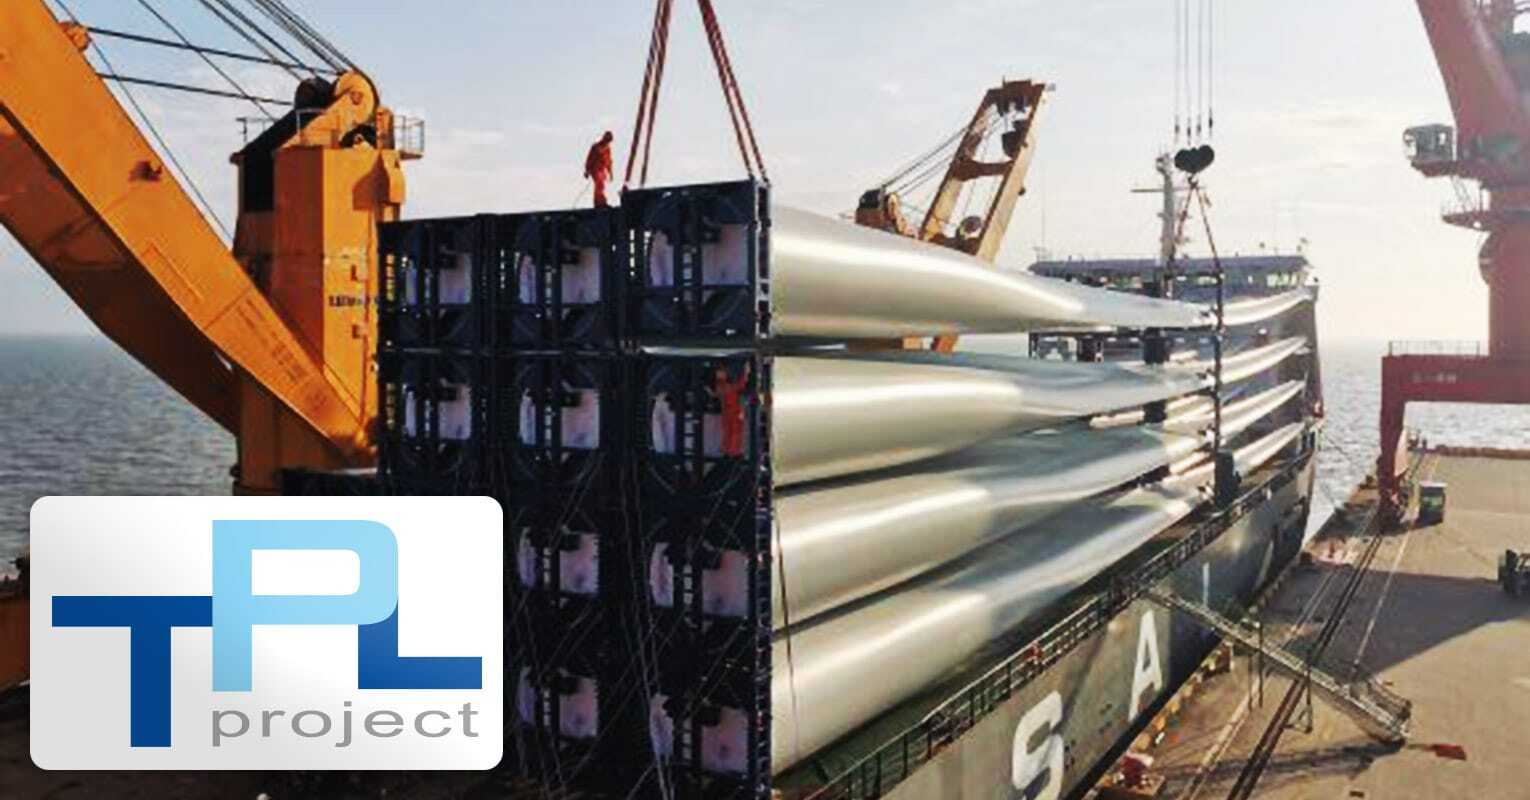 TPL Project Shipped Wind Turbine Blades from Shanghai to the US